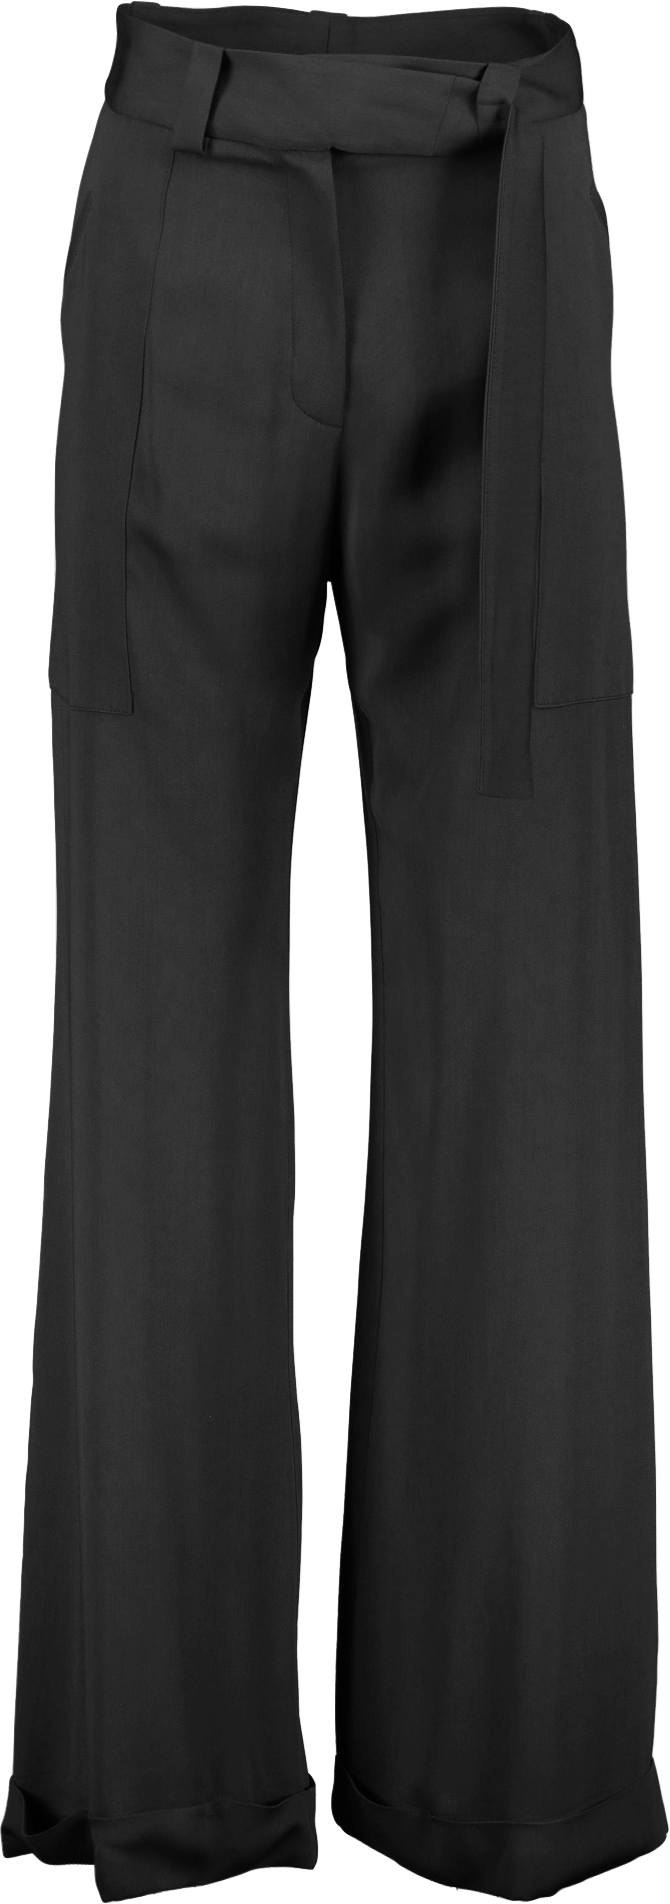 obstacle-pant-black-79e.png